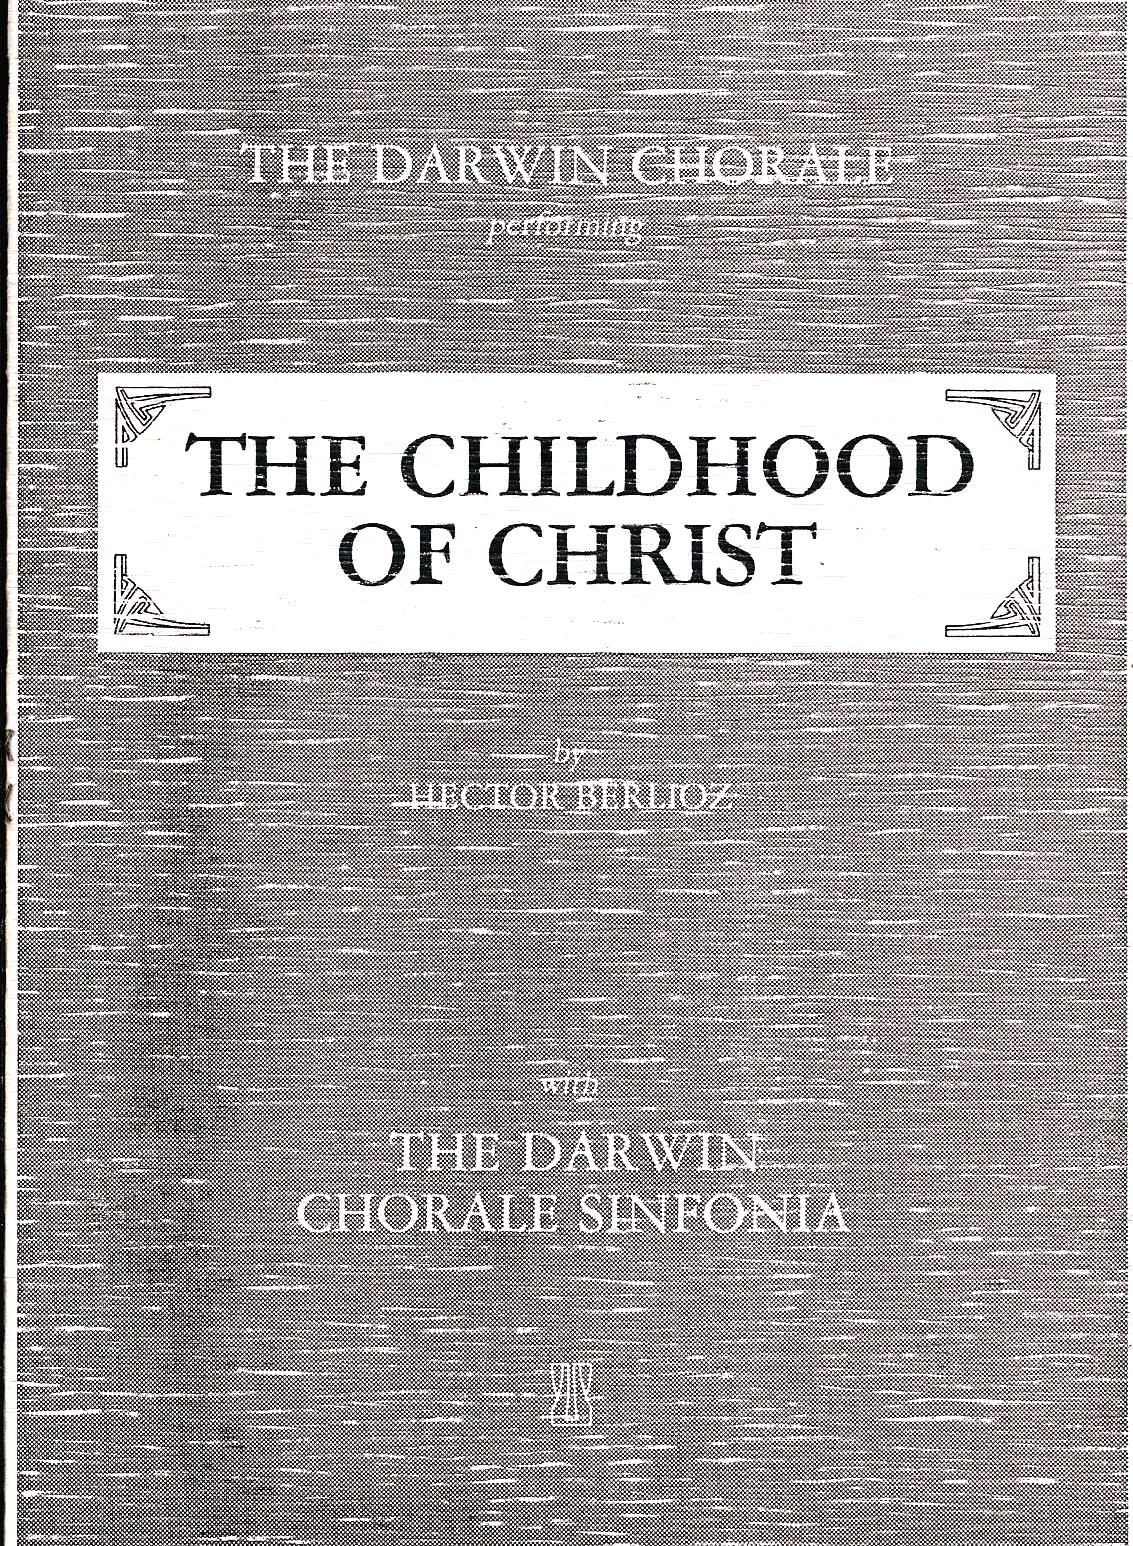 The Childhood of Christ 1986